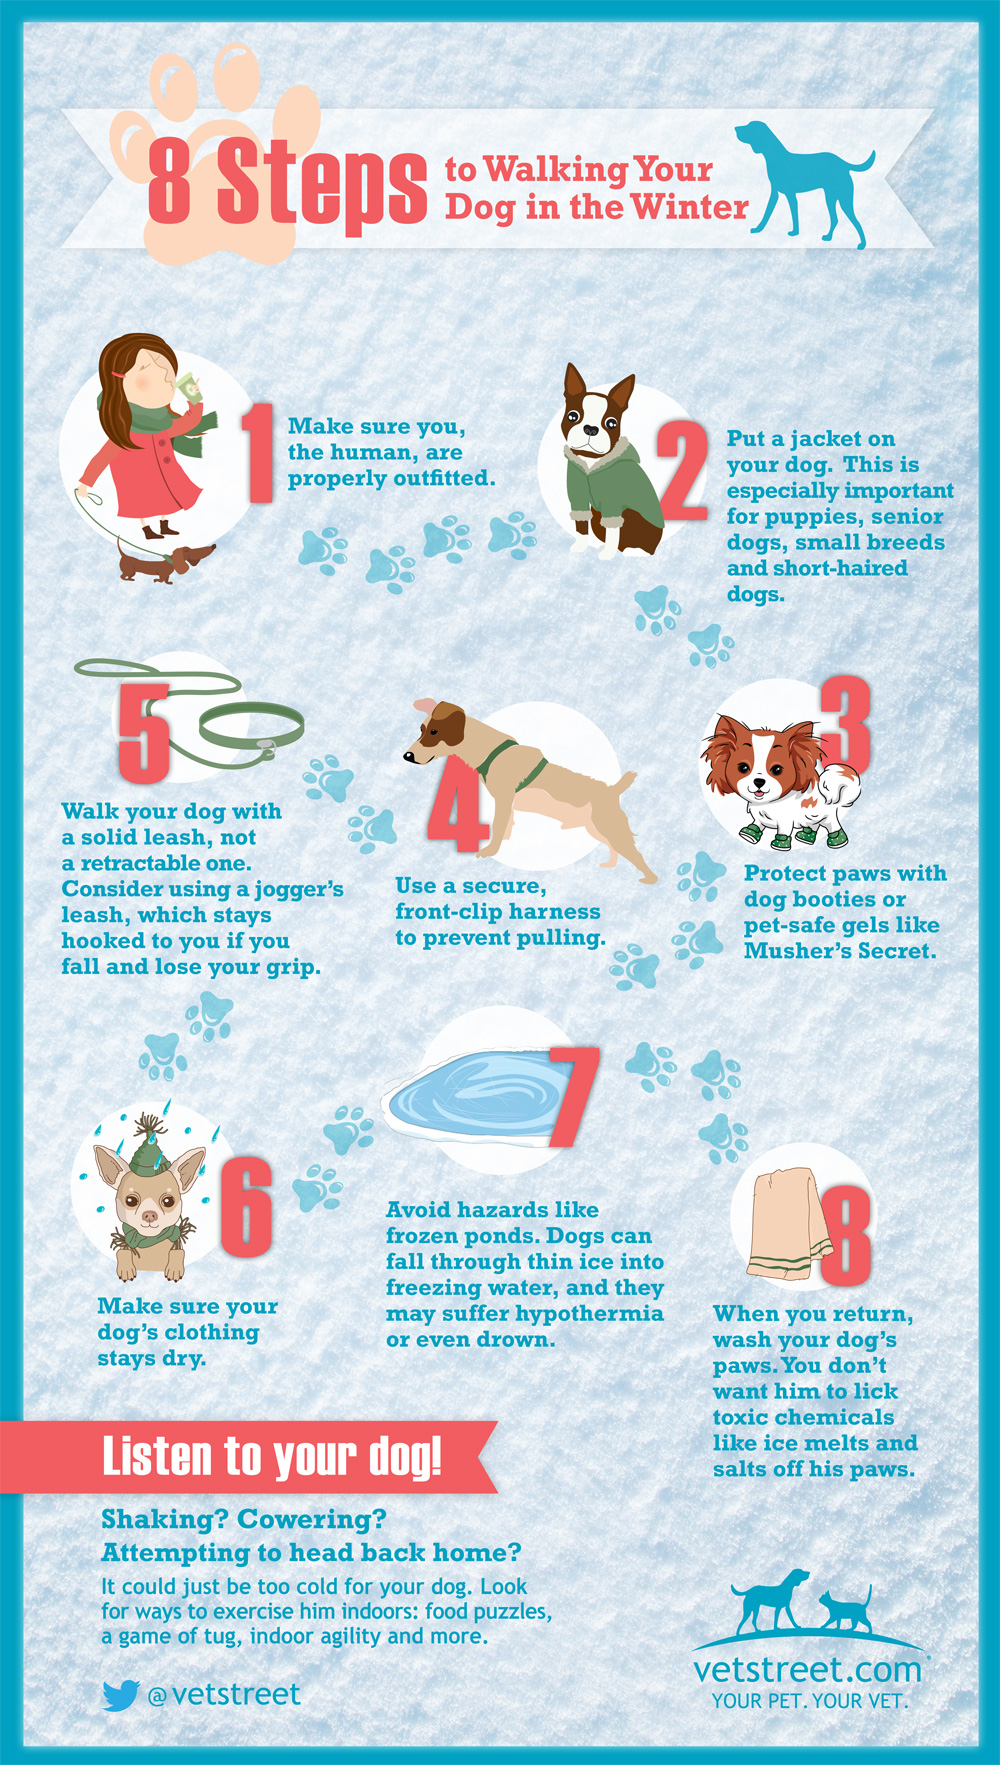 Liberty Village Animal Hospital tips for winter dogs